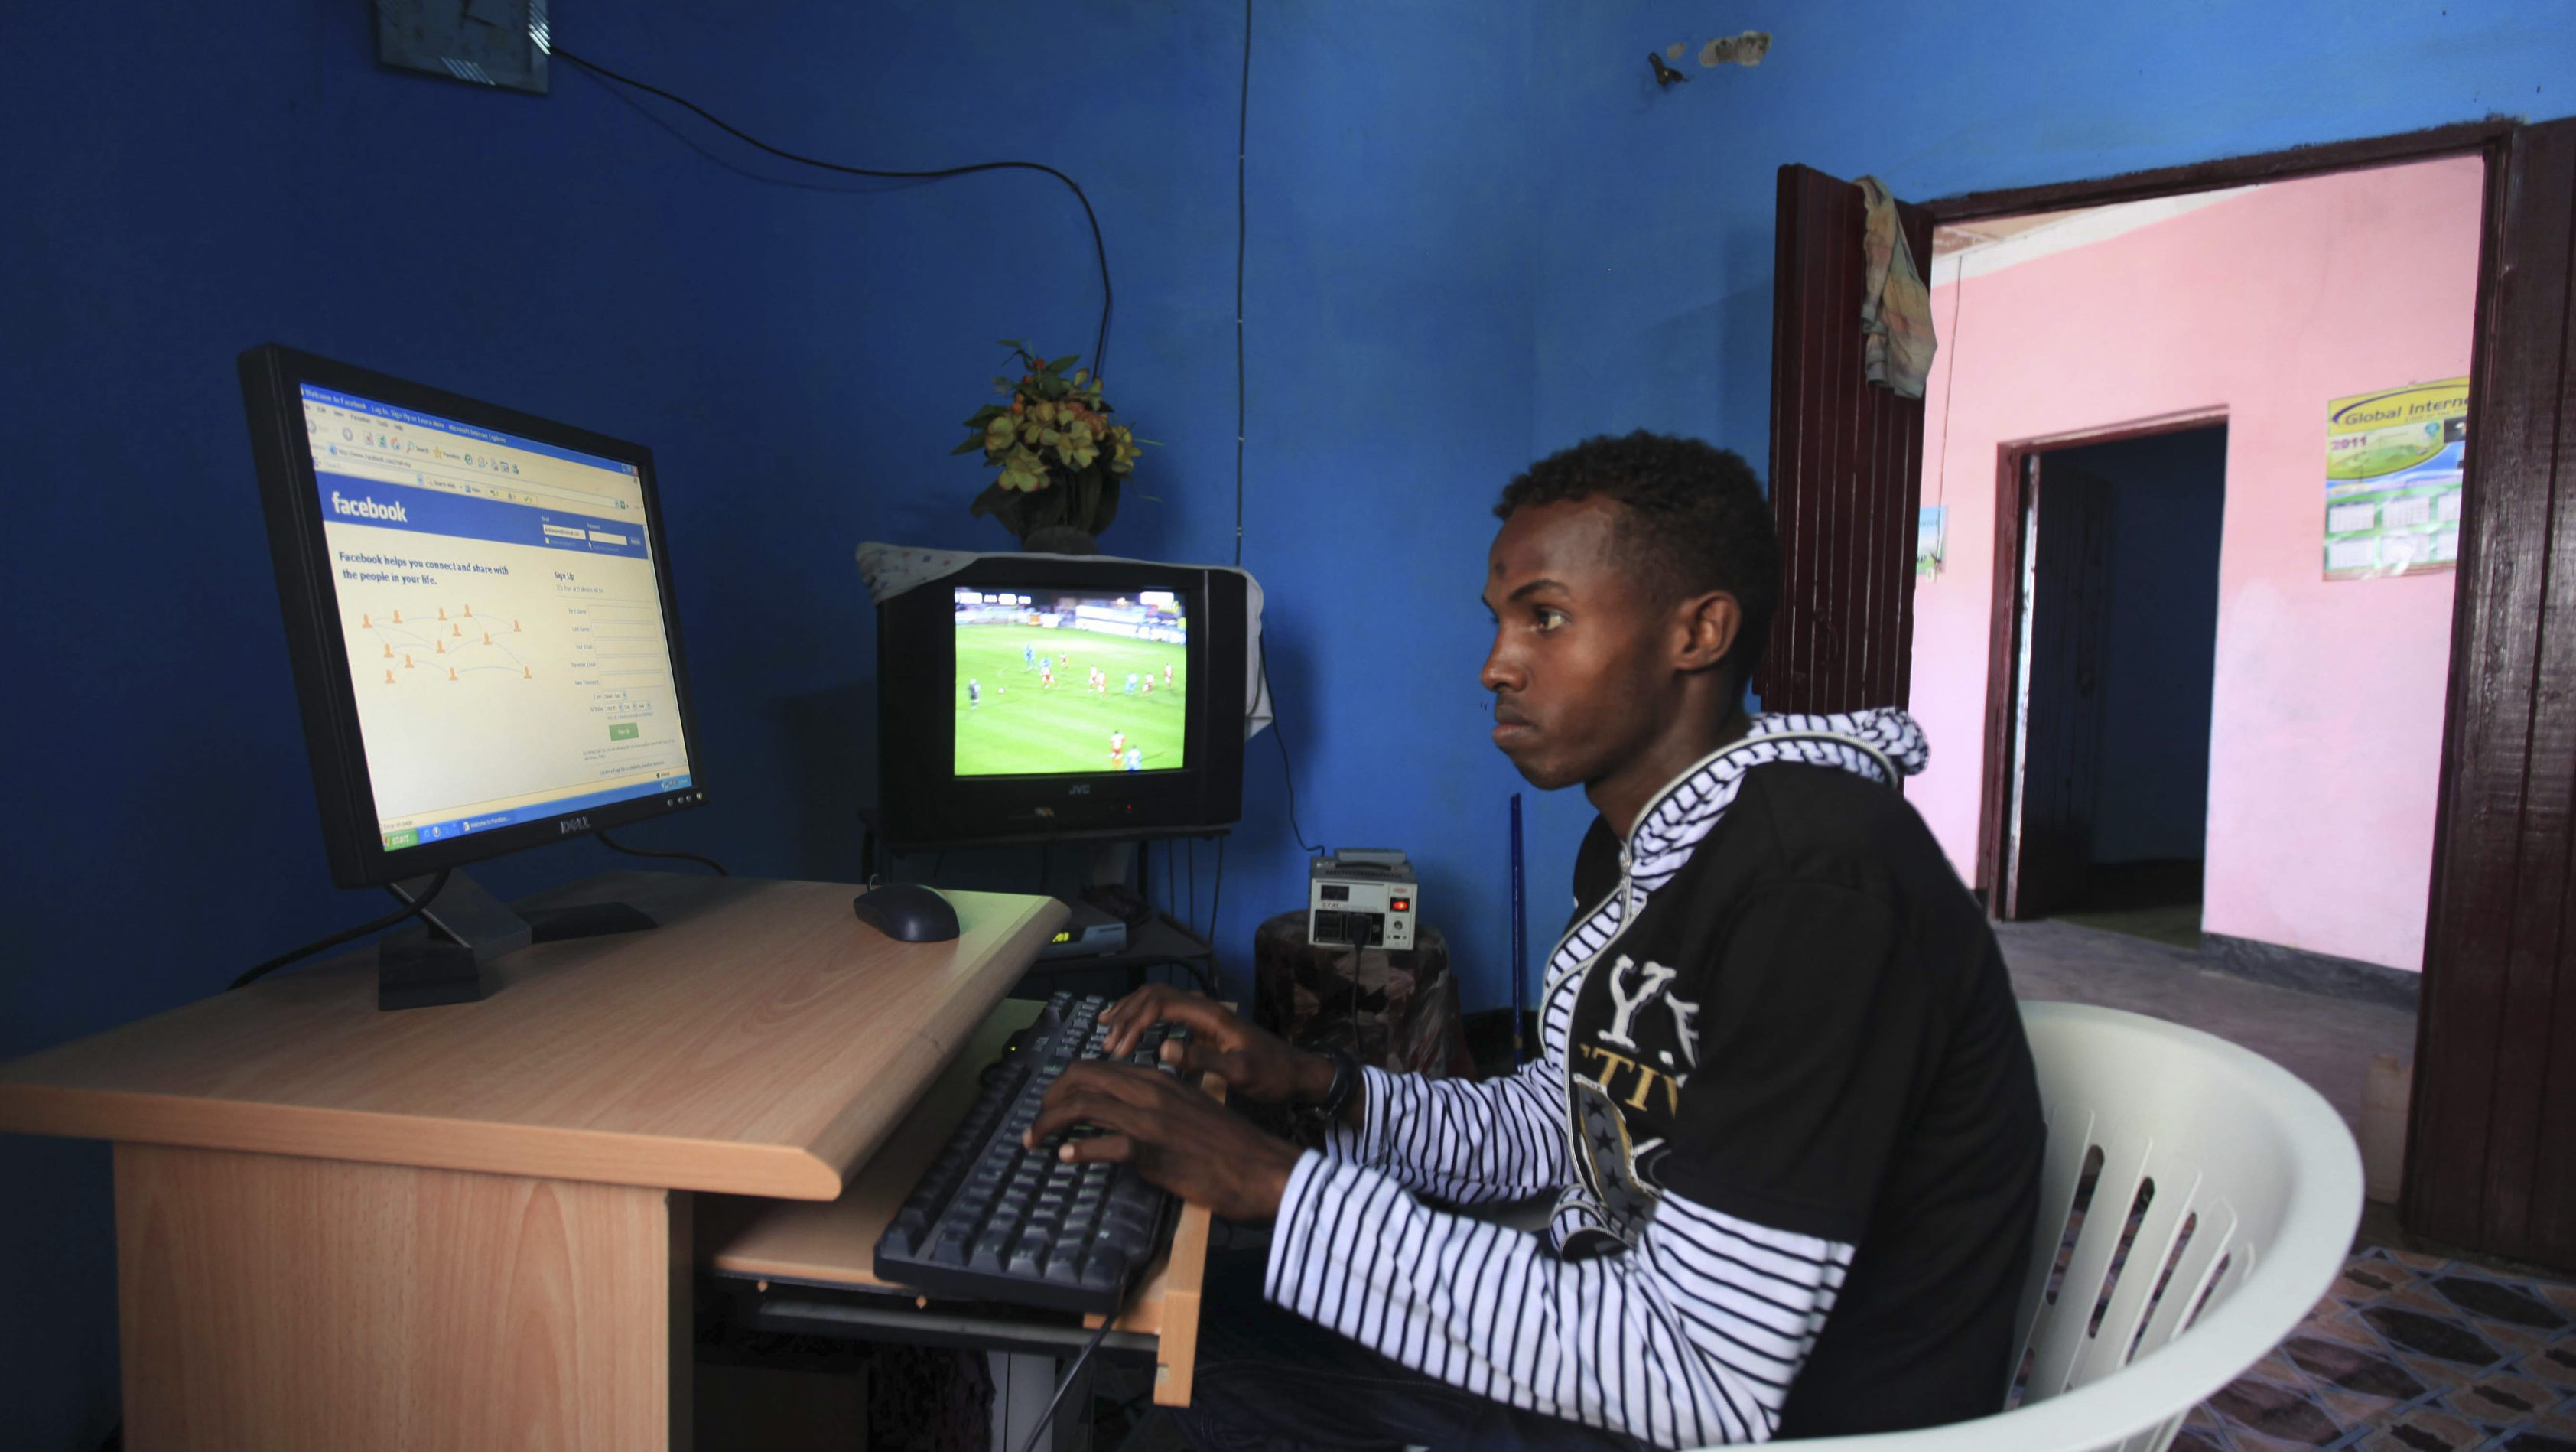 Somali athlete Abdullah Bare Kuulow browses the internet at a cyber-cafe after a training session as part of their preparations for the 2012 London Olympic Games in Somalia's capital Mogadishu March 14, 2012. Picture taken March 14, 2012.